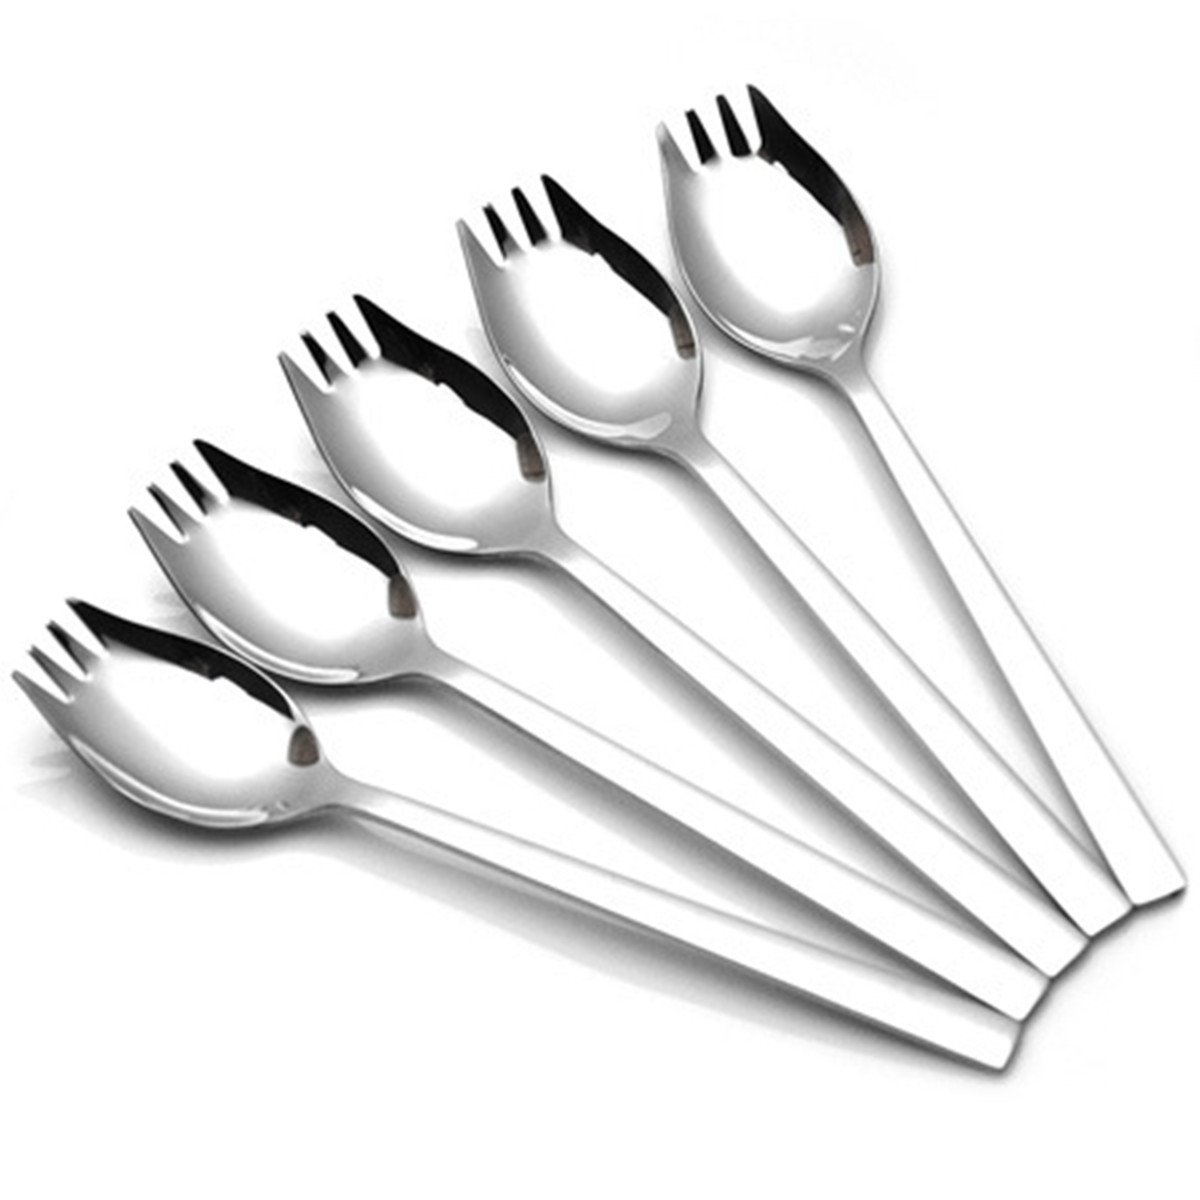 Buffet Fork,Salad Spork Cutlery Set, 18/10 Stainless Steel Spork for Outdoor Travel and Camping, 2in1 Spoon and Fork-5 Pieces by ZYV ZYVoyage